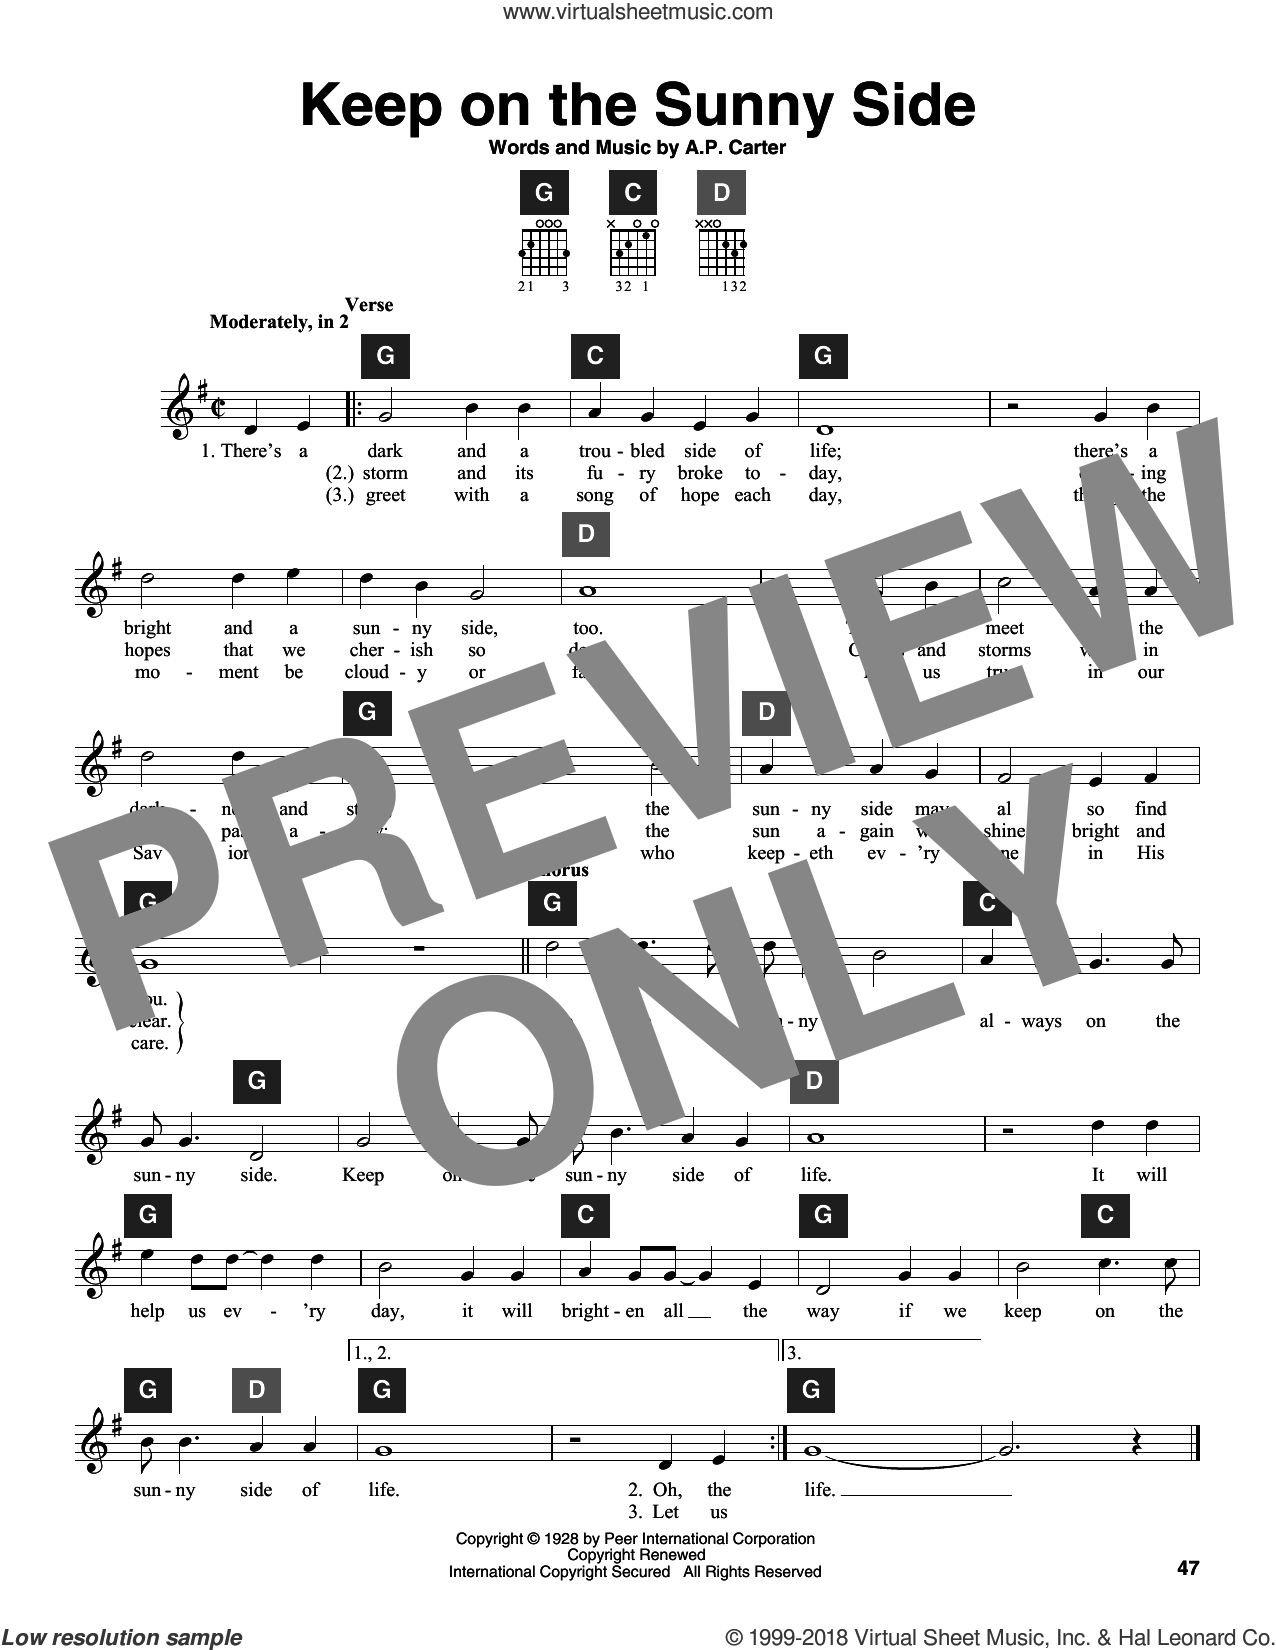 Keep On The Sunny Side sheet music for guitar solo (ChordBuddy system) by A.P. Carter and The Carter Family. Score Image Preview.